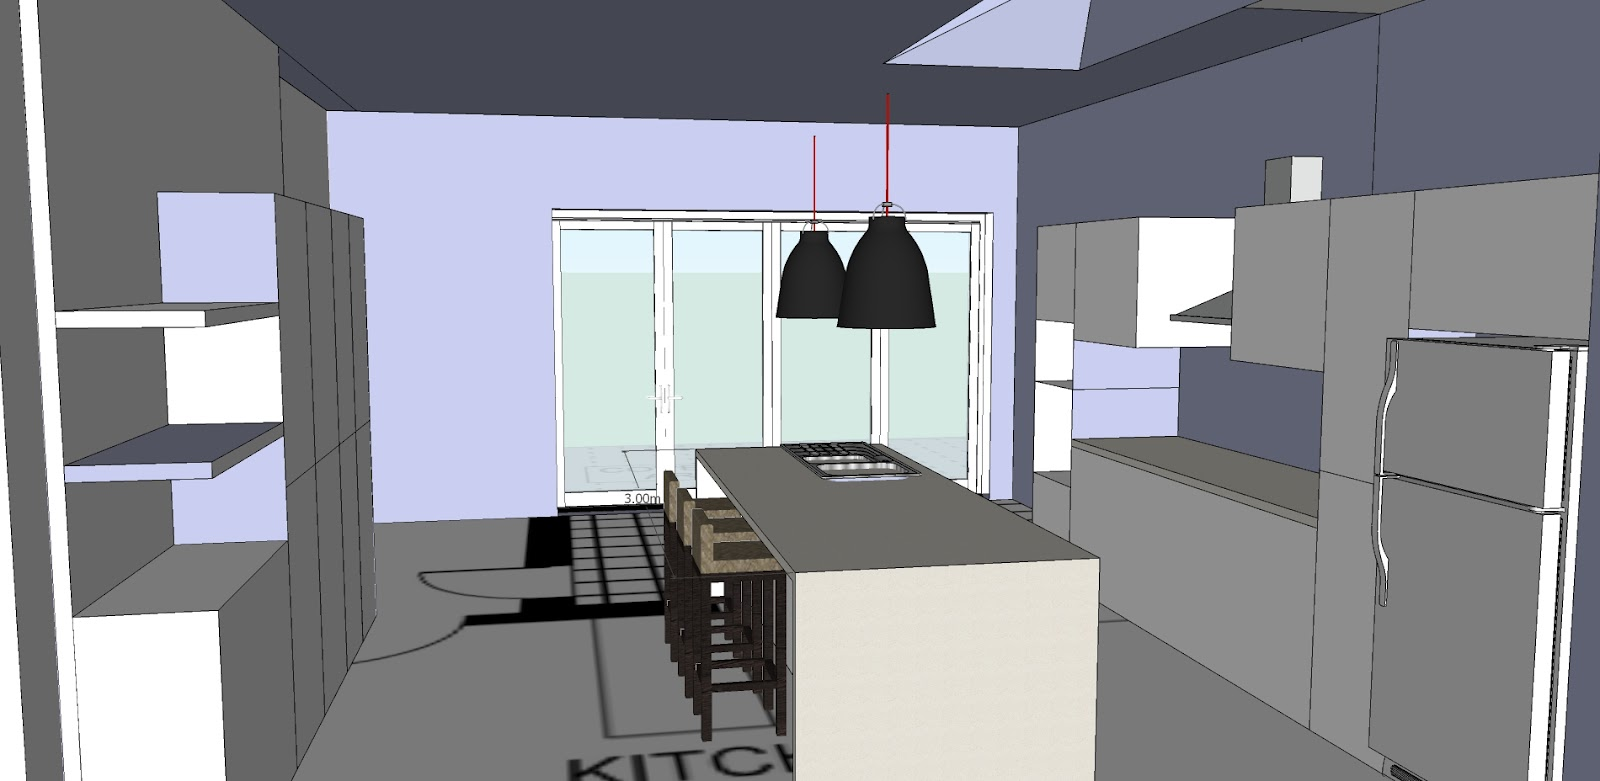 Planning The Layout Of My Galley Kitchen Afreakatheart